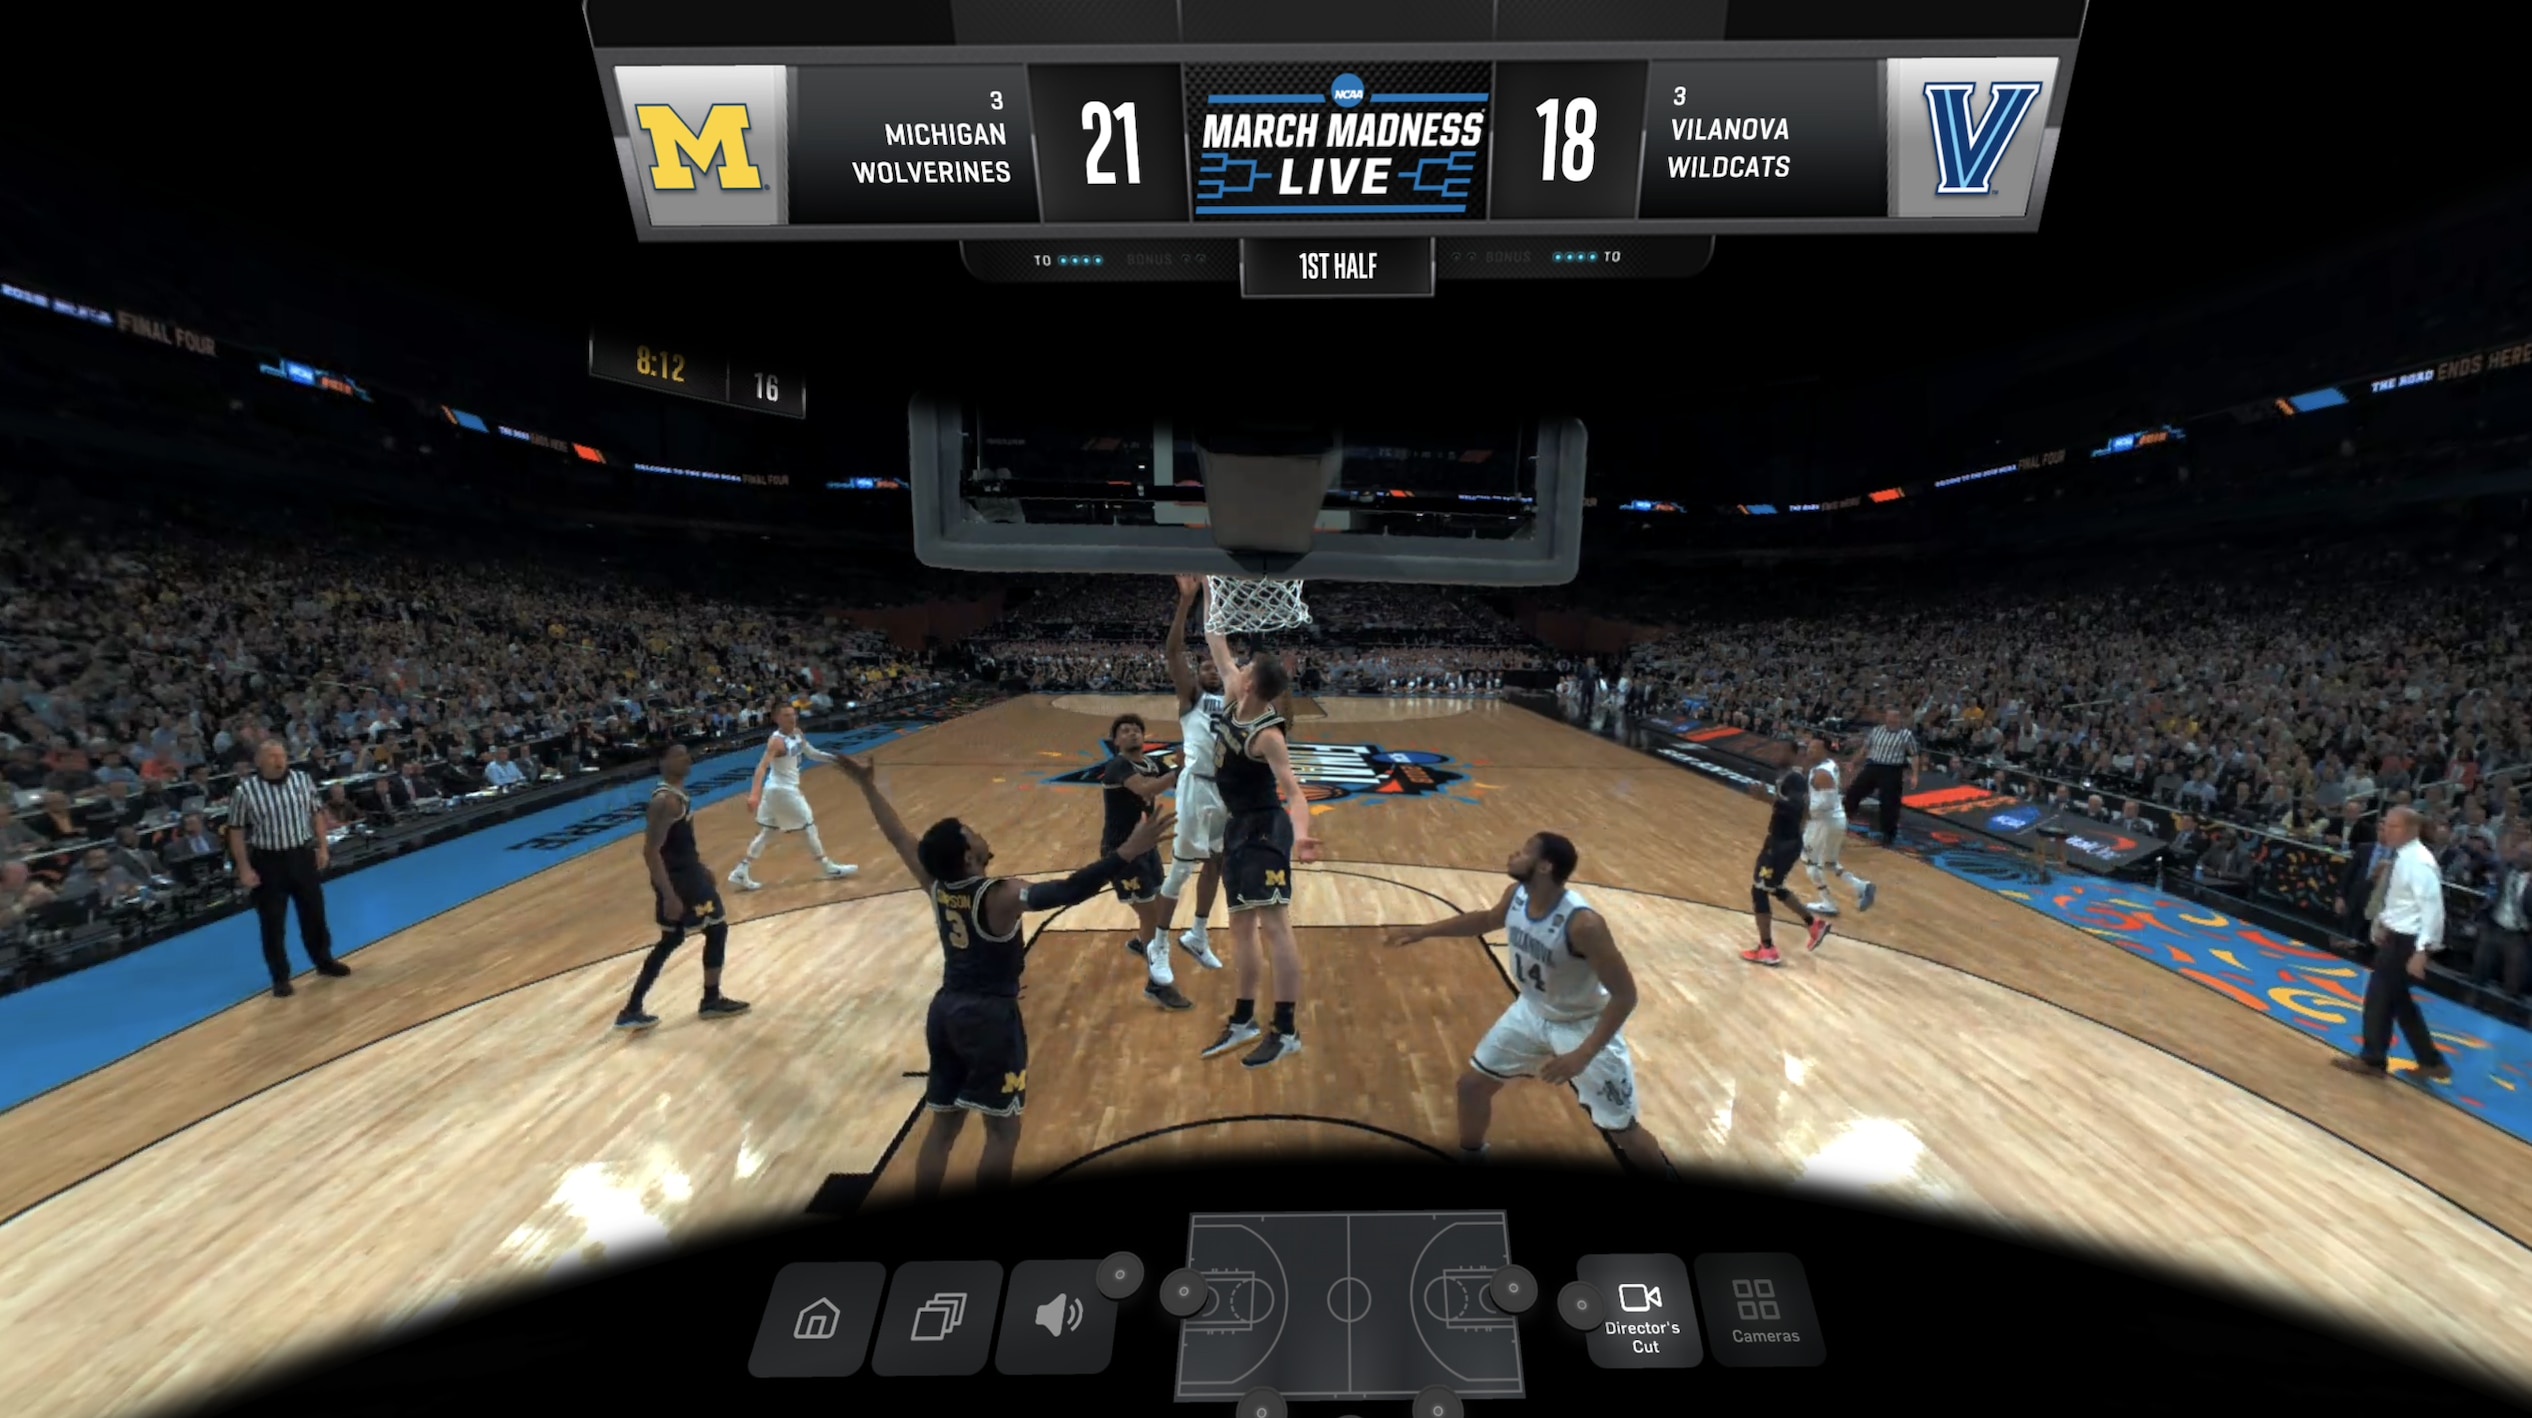 How to watch 2019 NCAA March Madness games in virtual